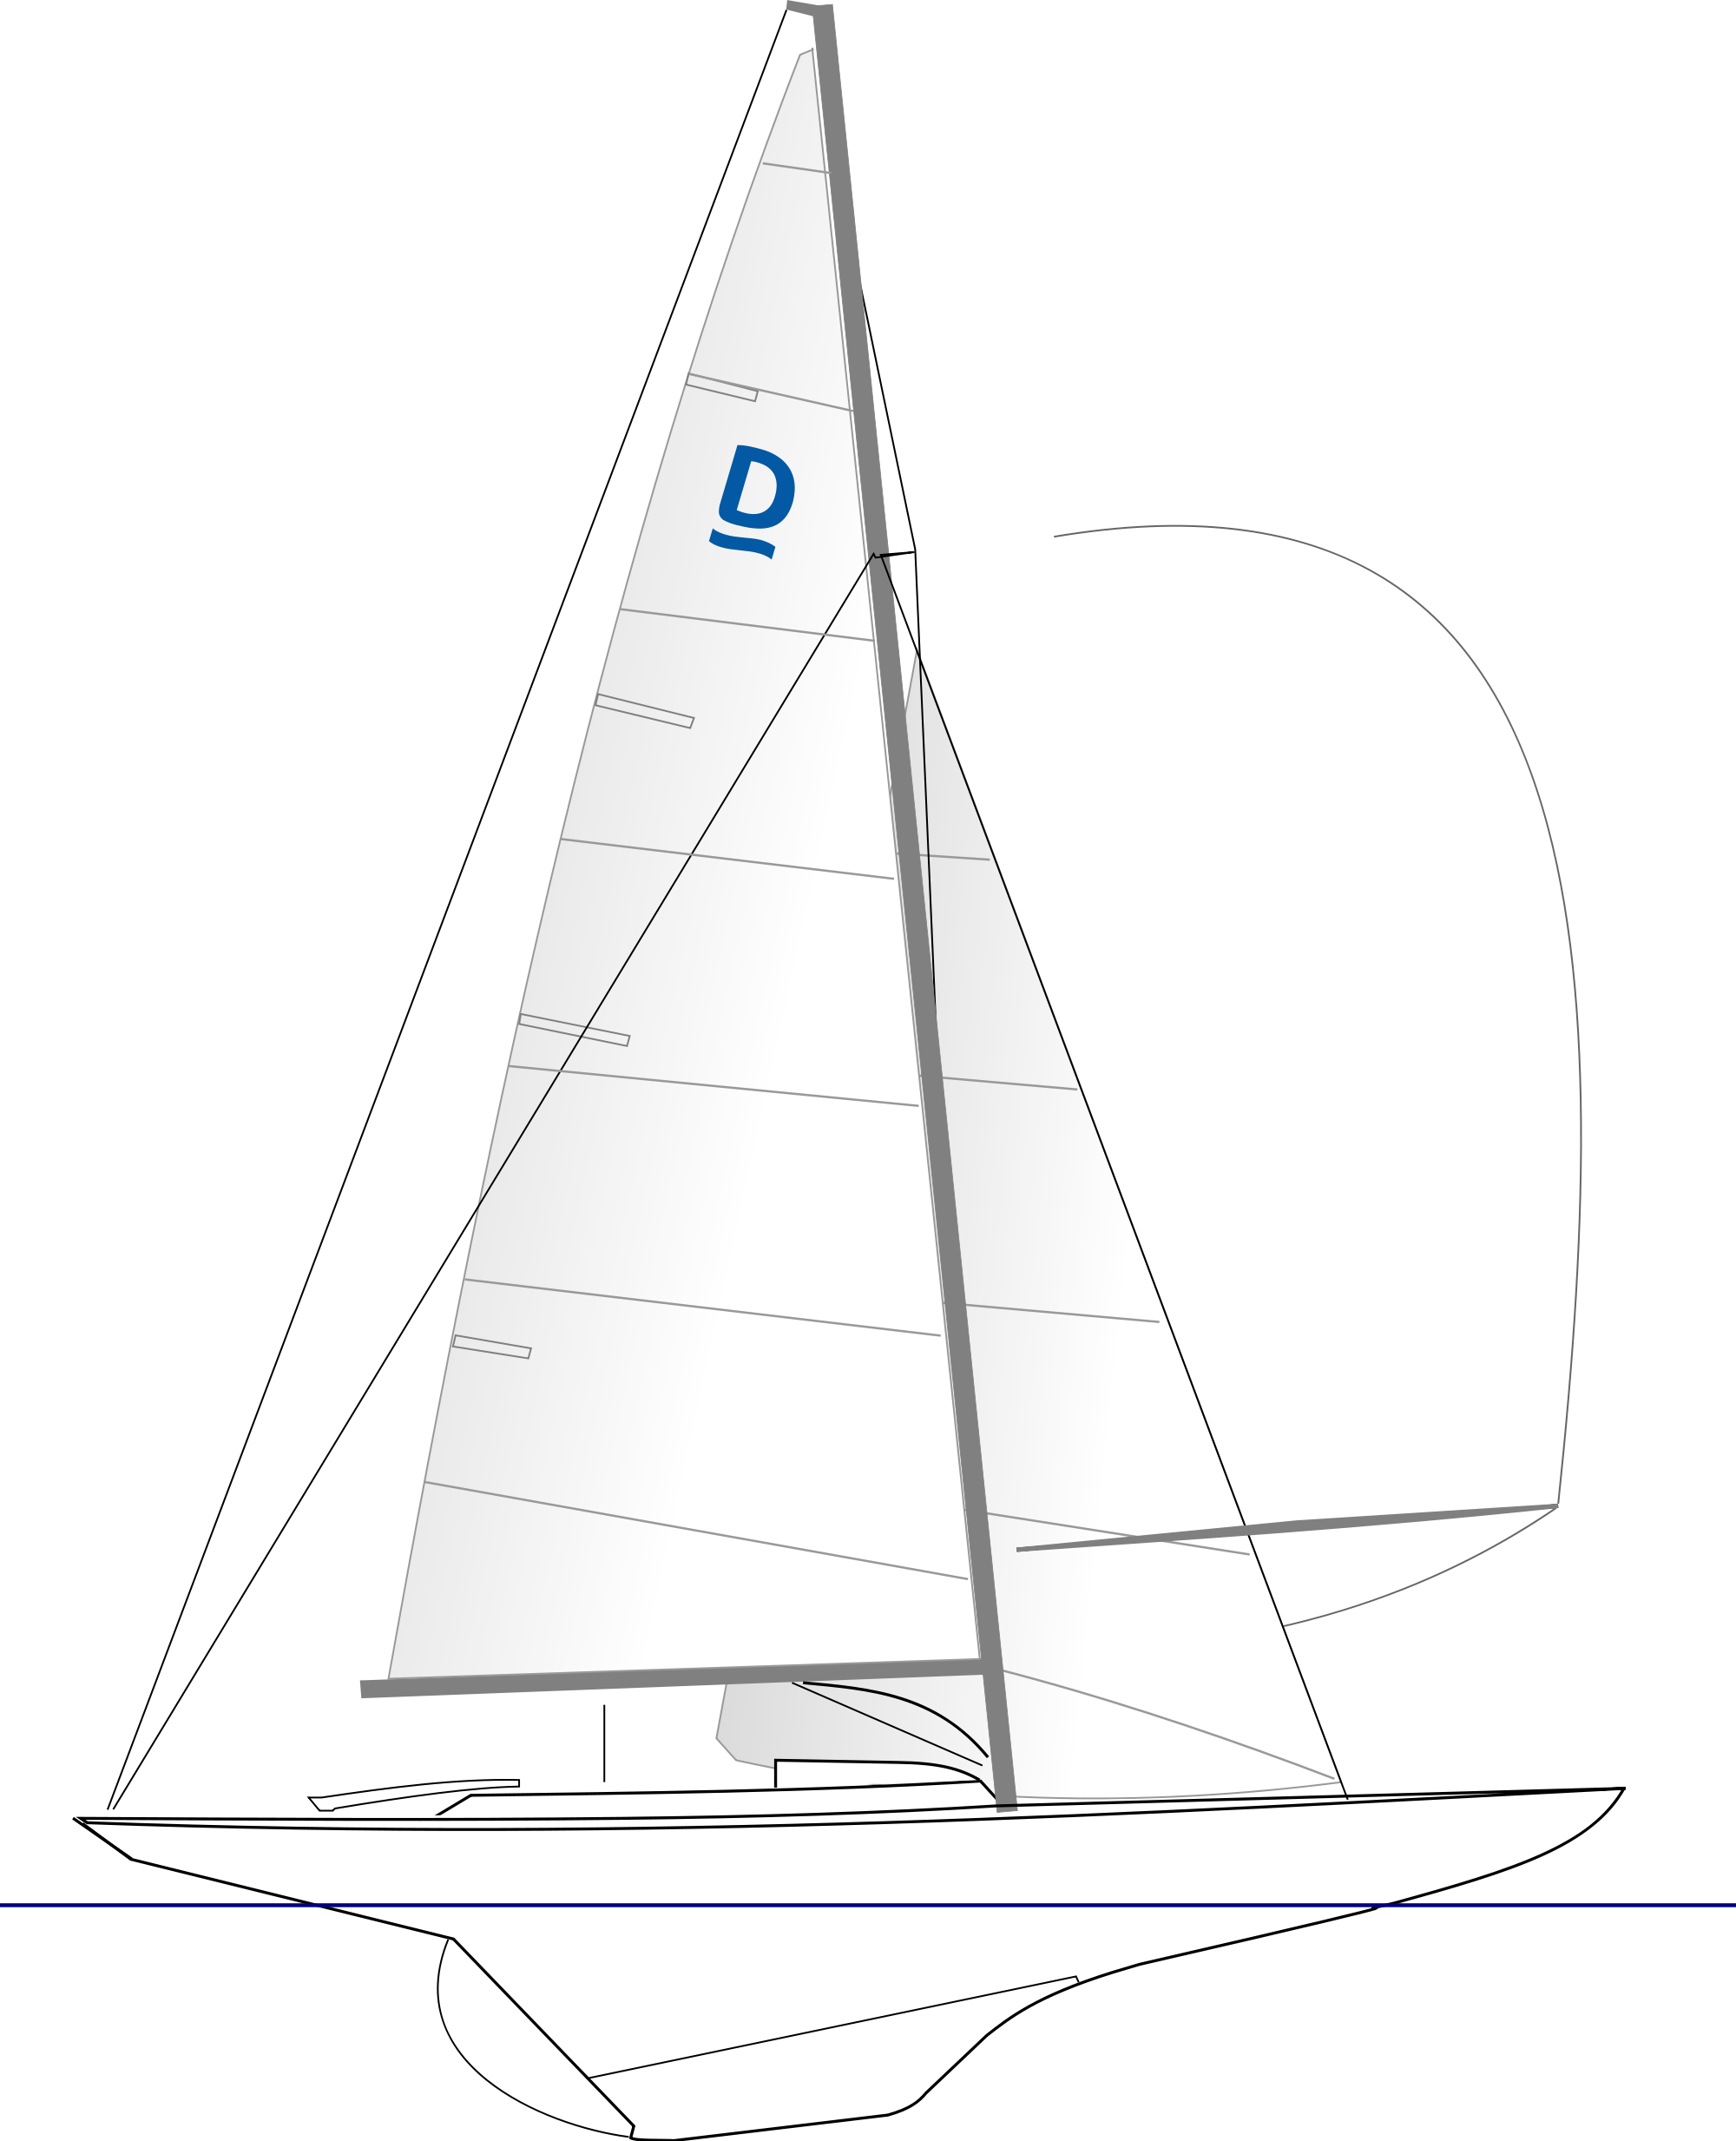 Dragon Keelboat